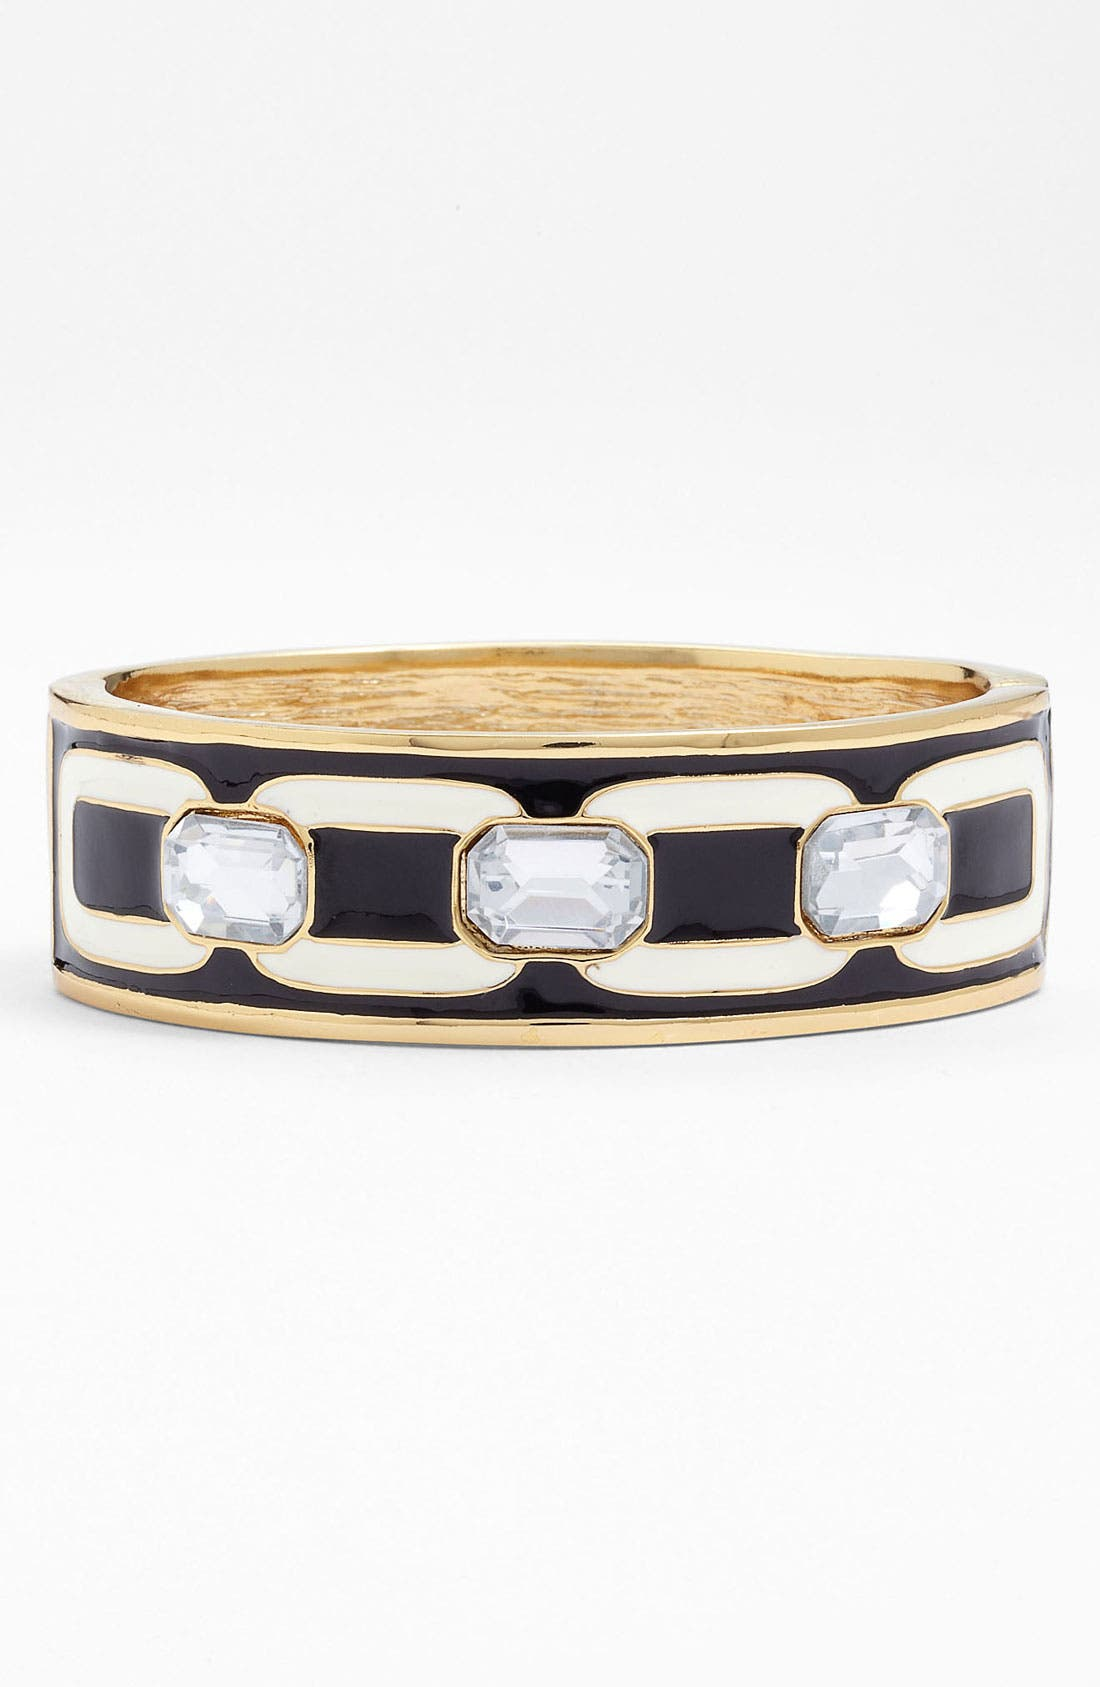 Alternate Image 1 Selected - Anne Klein 'Deco'ed Out' Wide Enamel Bangle